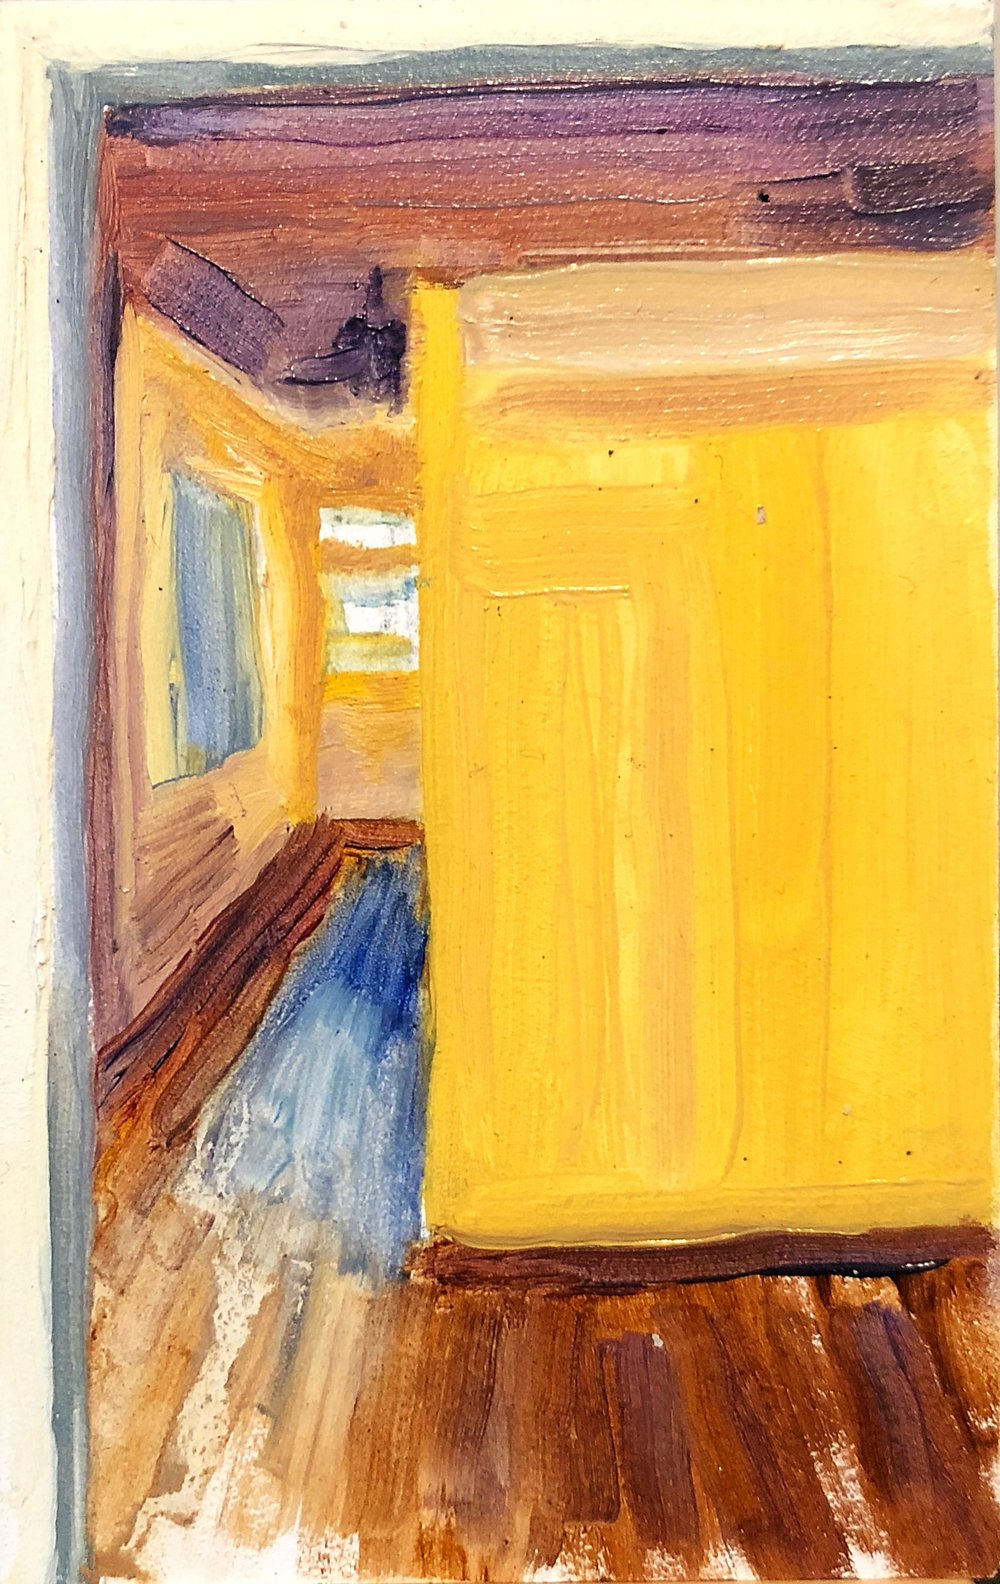 Shaker Doorway II